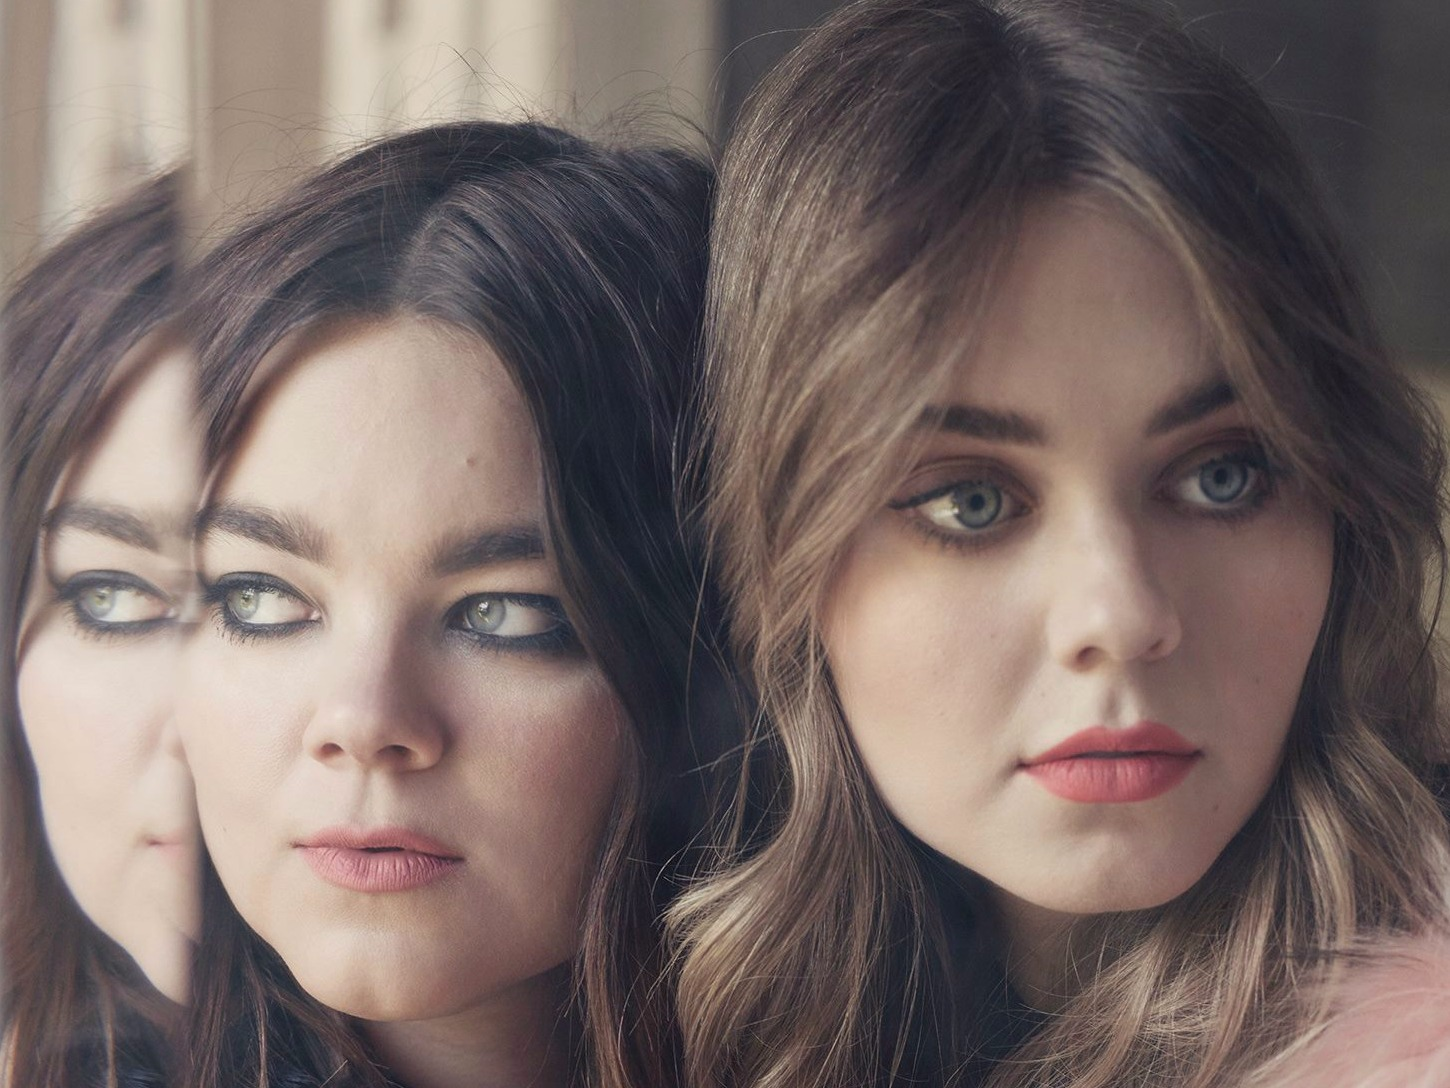 SONG OF THE DAY: 'Postcard' by First Aid Kit